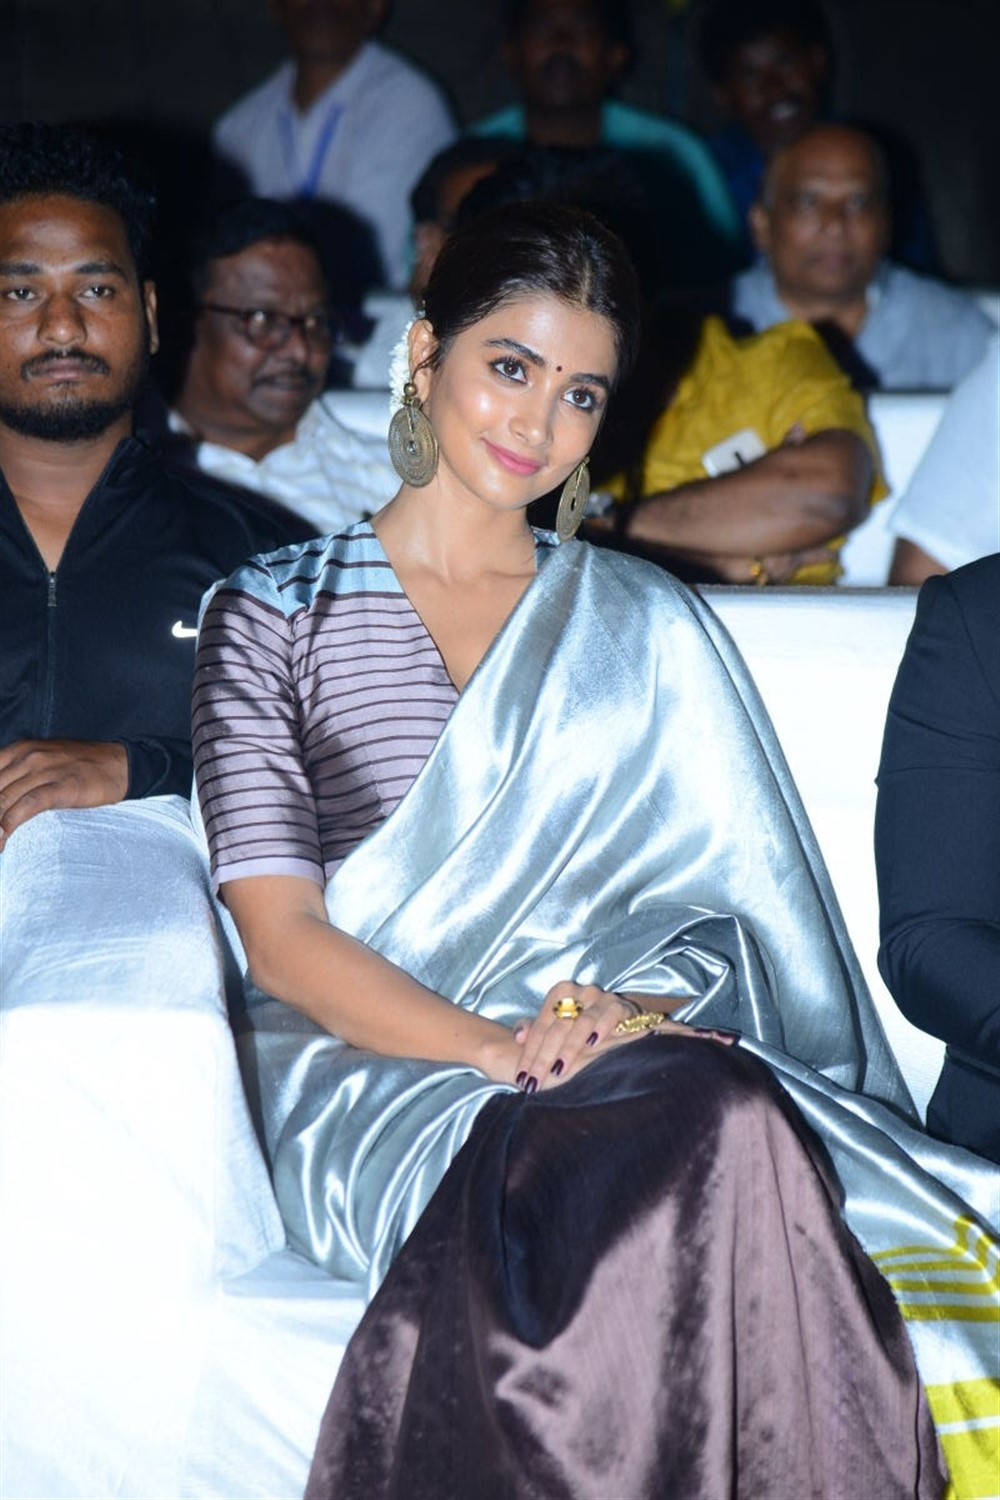 Actress Pooja Hegde Saree Stills @ Ala Vaikunthapurramuloo Success Celebrations